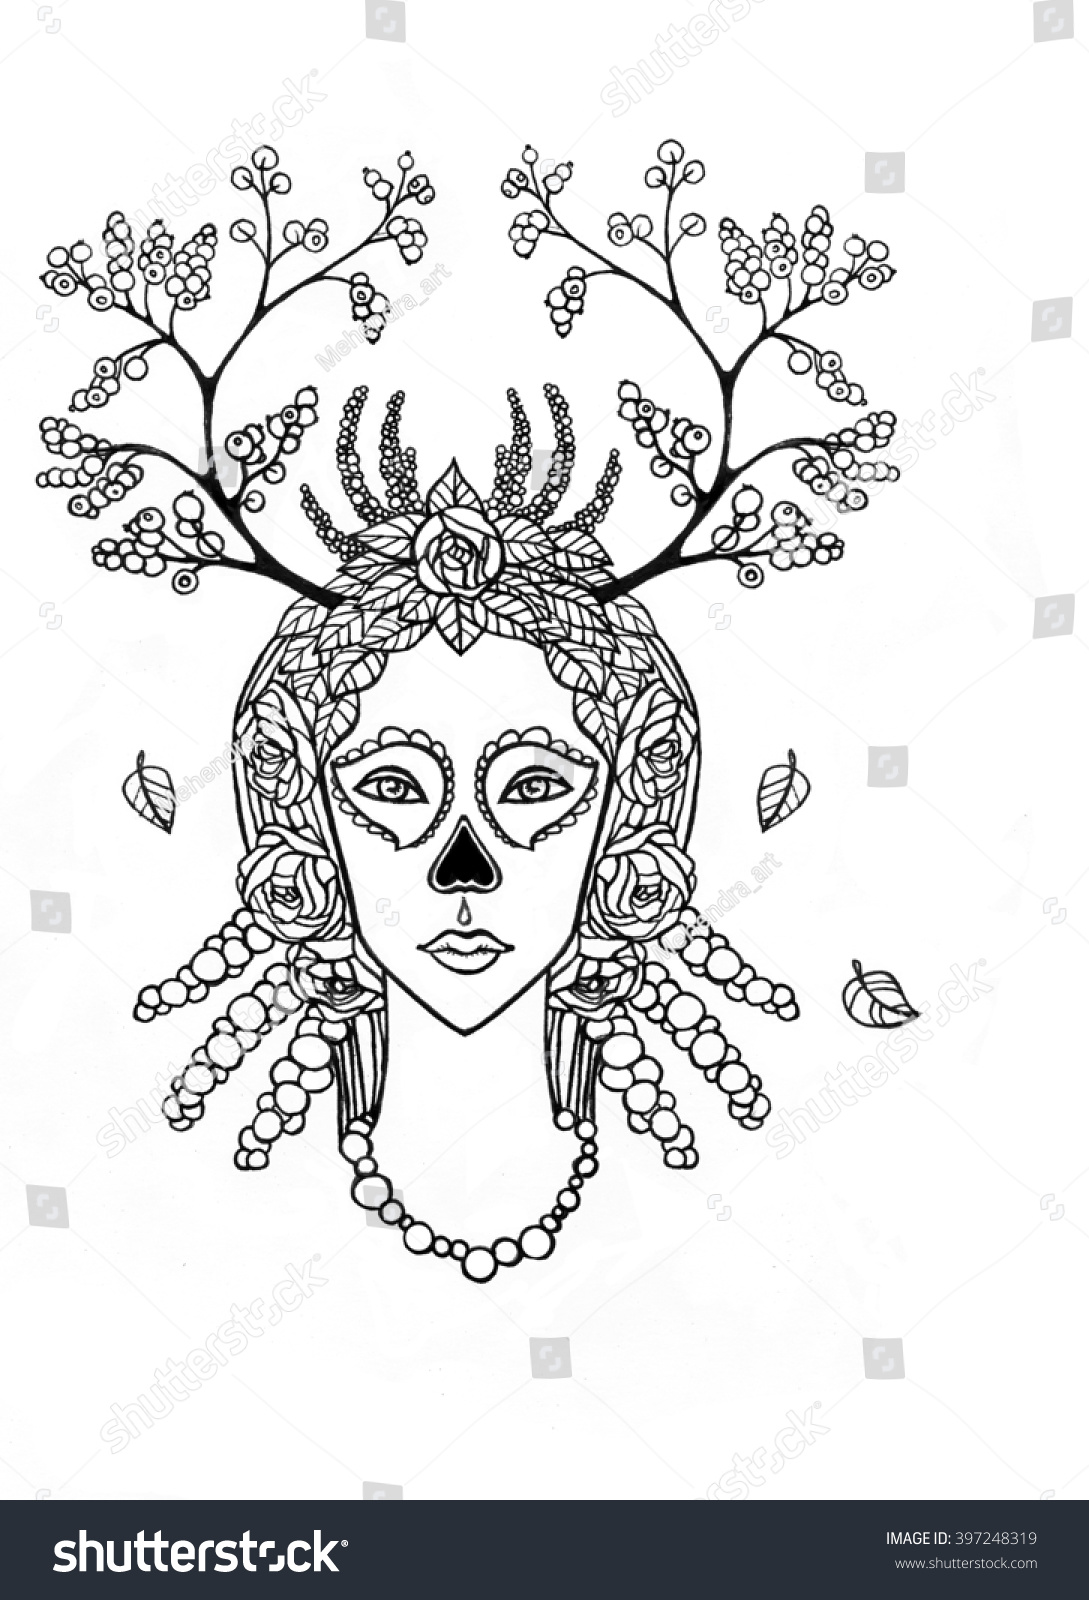 Santa Muerte Coloring Pages With Portrait Young Woman Skeleton Stock Illustration